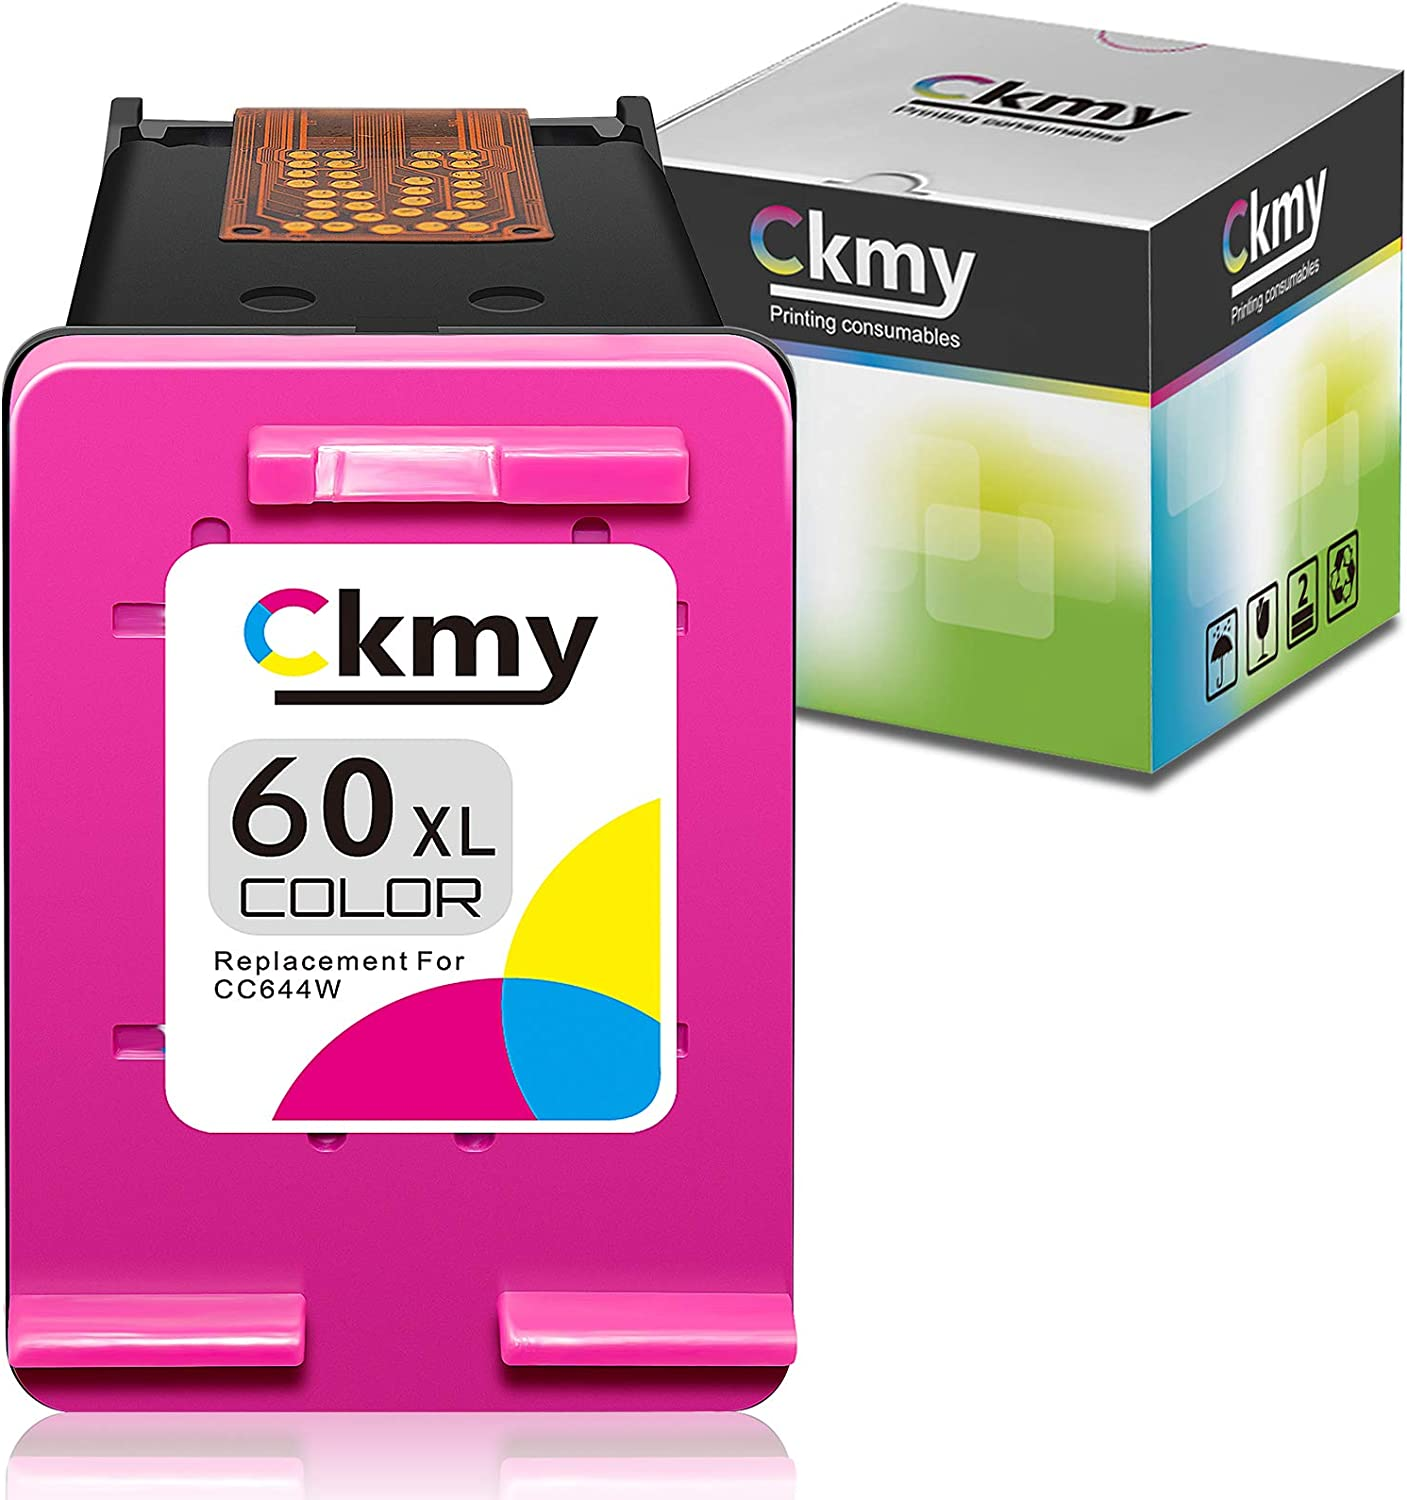 CKMY Remanufactured 60 Ink Cartridge Replacement for HP 60XL Color for HP PhotoSmart C4700 C4795 C4600 D110a Envy 120 100 114 110 DeskJet D1620 F4235 F4580 F4400 F2430 F4440 F2480 Printer (1 TriColor)